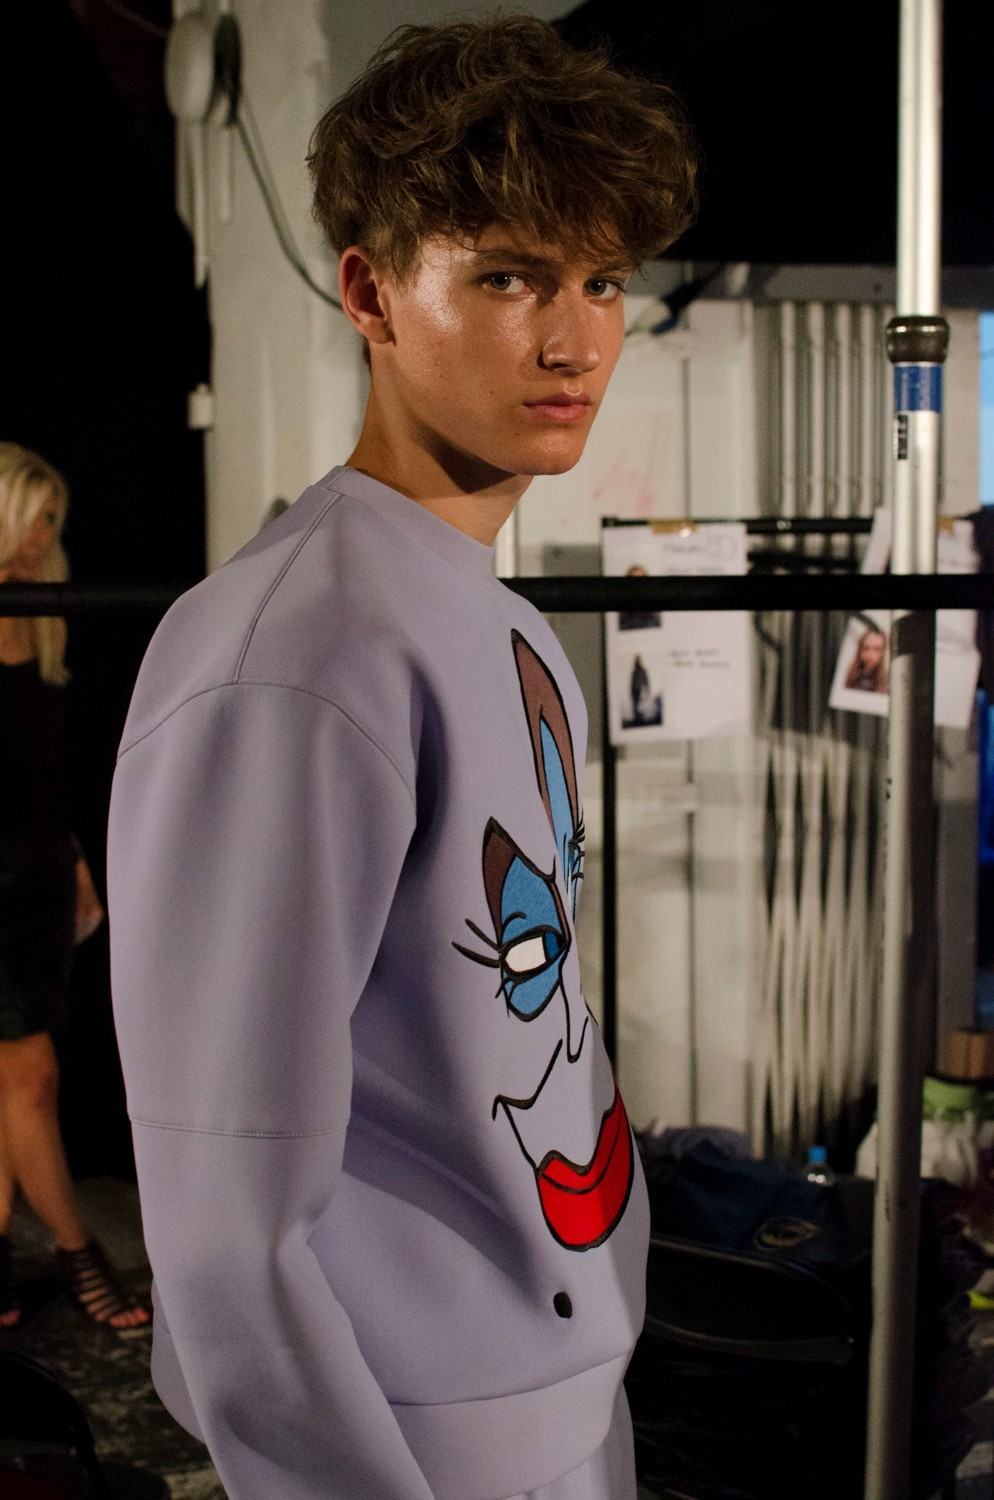 Bobby Abley SS15 Mens collections, Dazed backstage